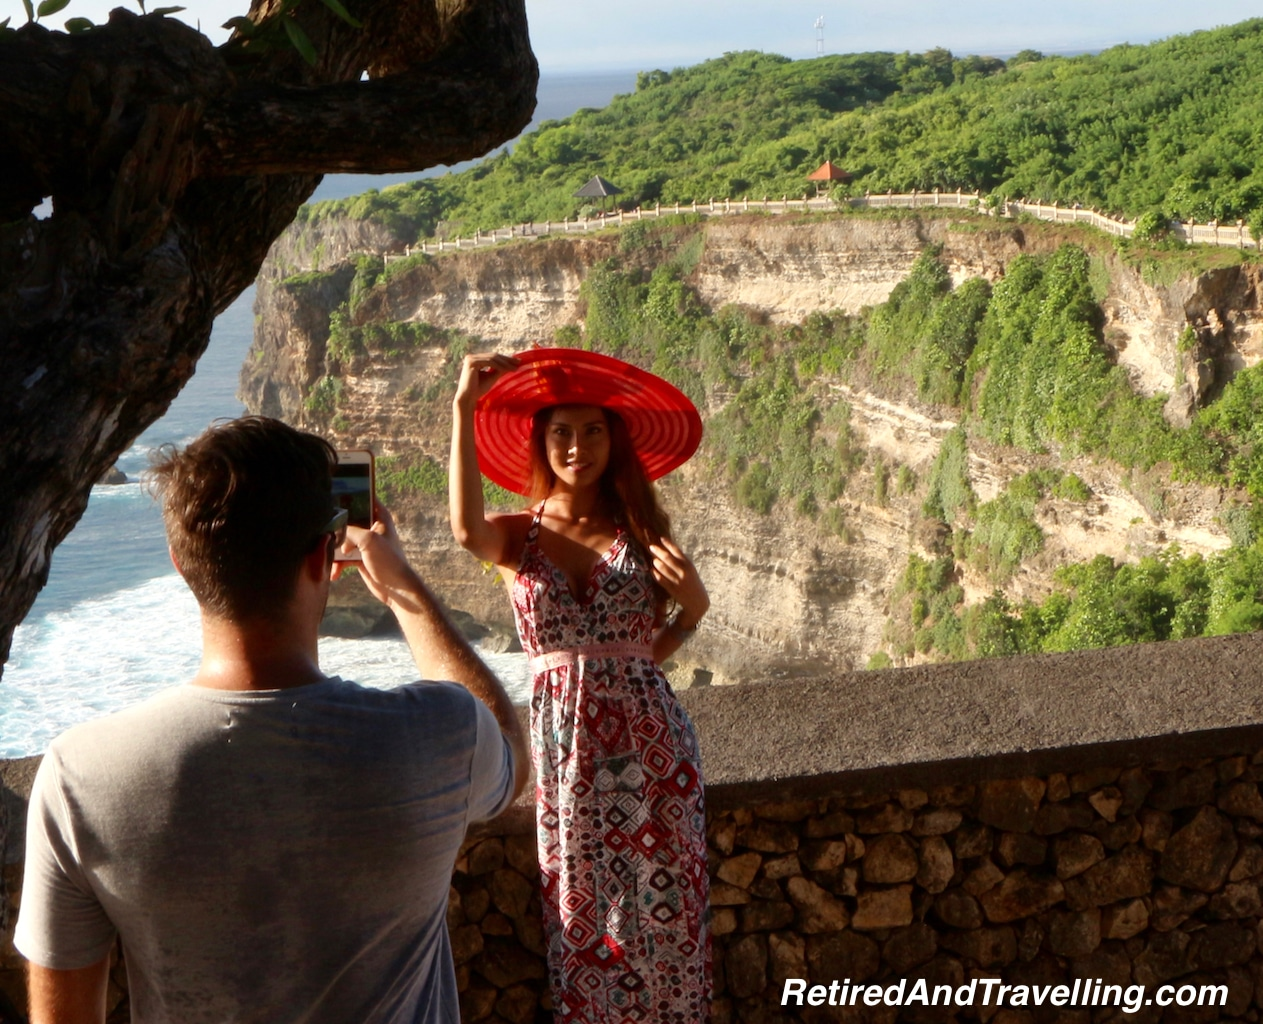 Tourists of Bali - Faces of Bali.jpg